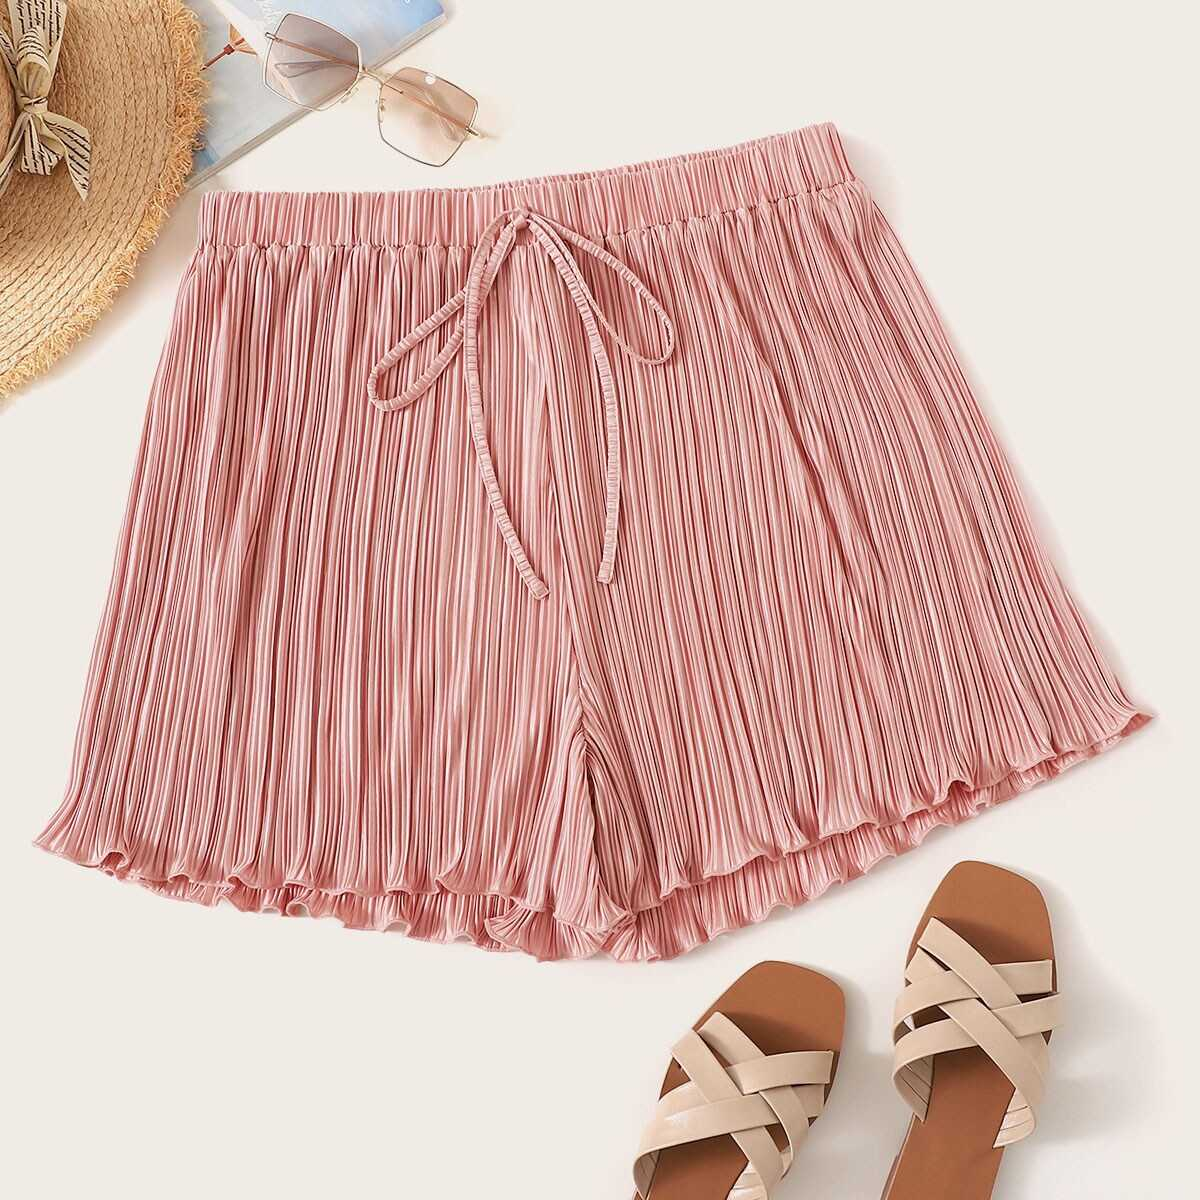 Plus Knot Front Lettuce Trim Pleated Shorts - Shein - GOOFASH